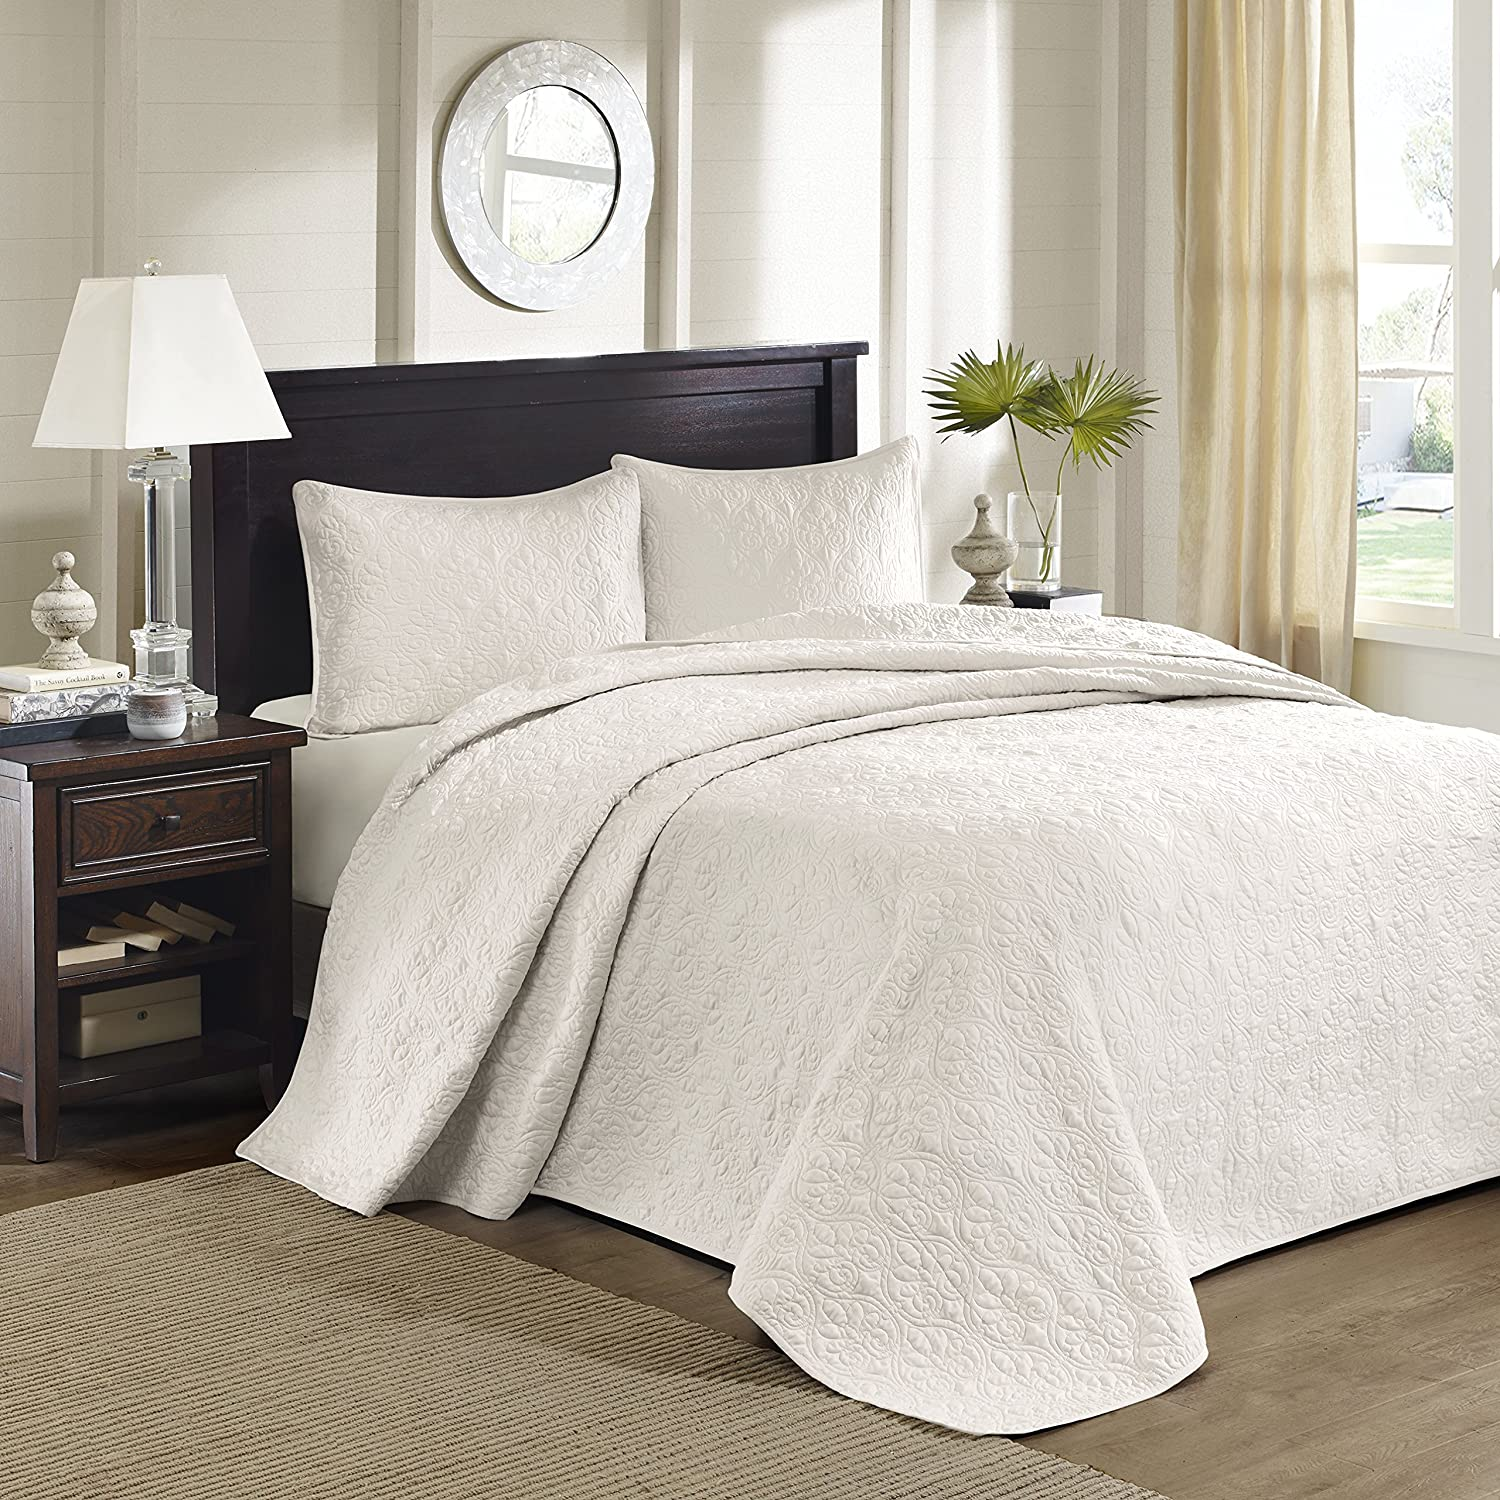 Amazon.com: Madison Park Quebec 3 Piece Bedspread Set, King, Ivory: Home U0026  Kitchen